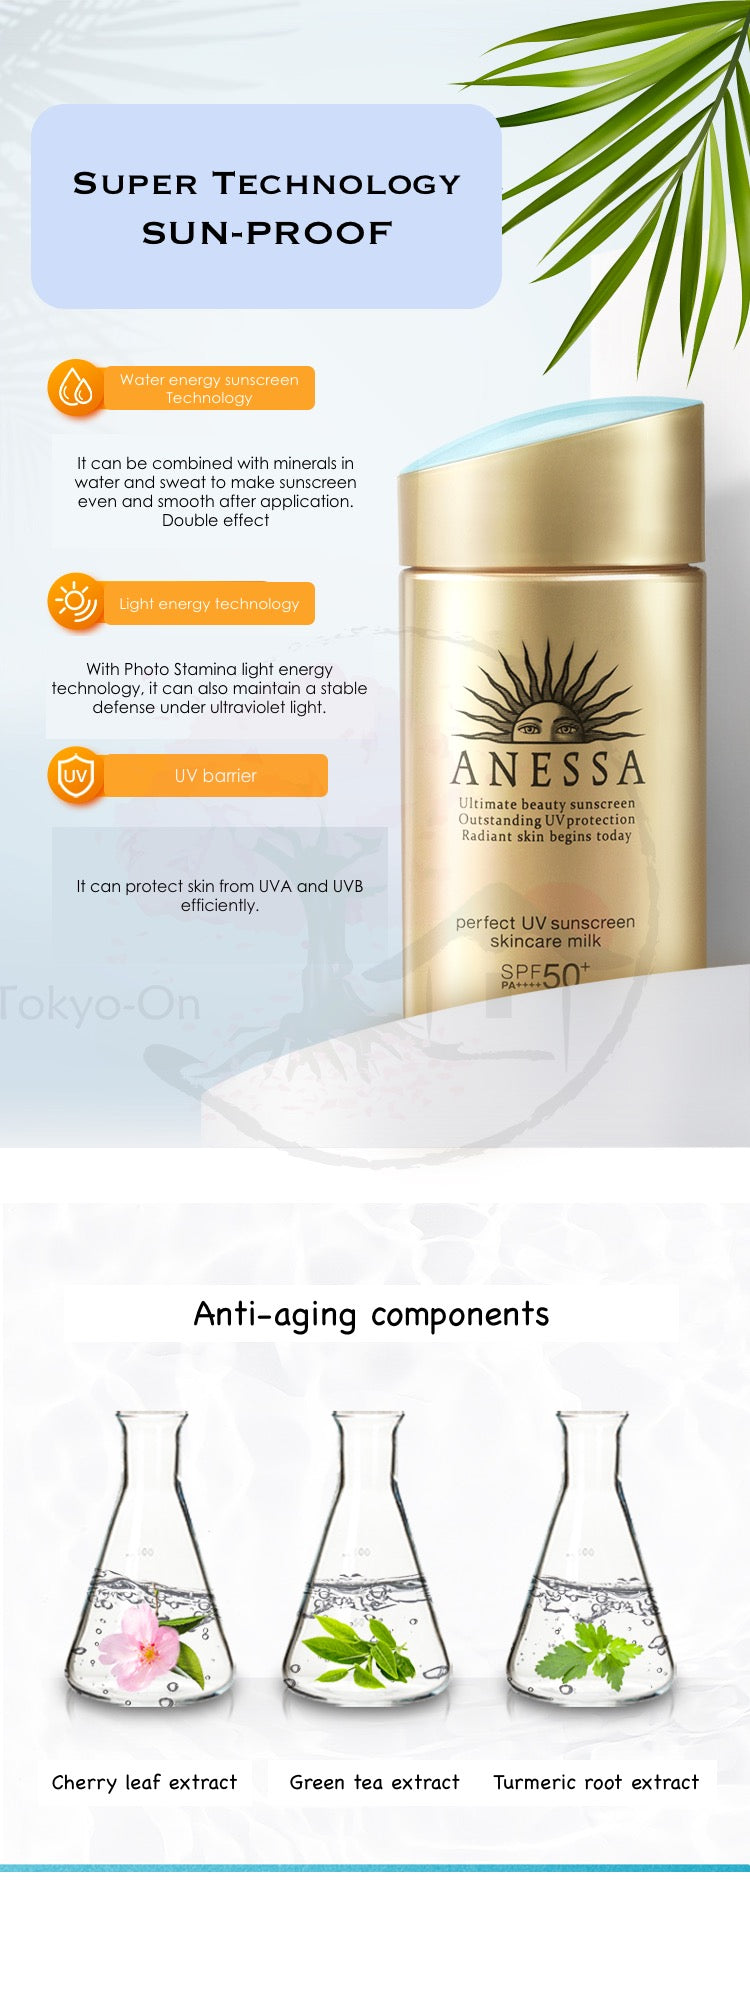 Tokyo-On Anessa Perfect UV Sunscreen Milk Skincare Shiseido SPF50+ PA++++ 60ml